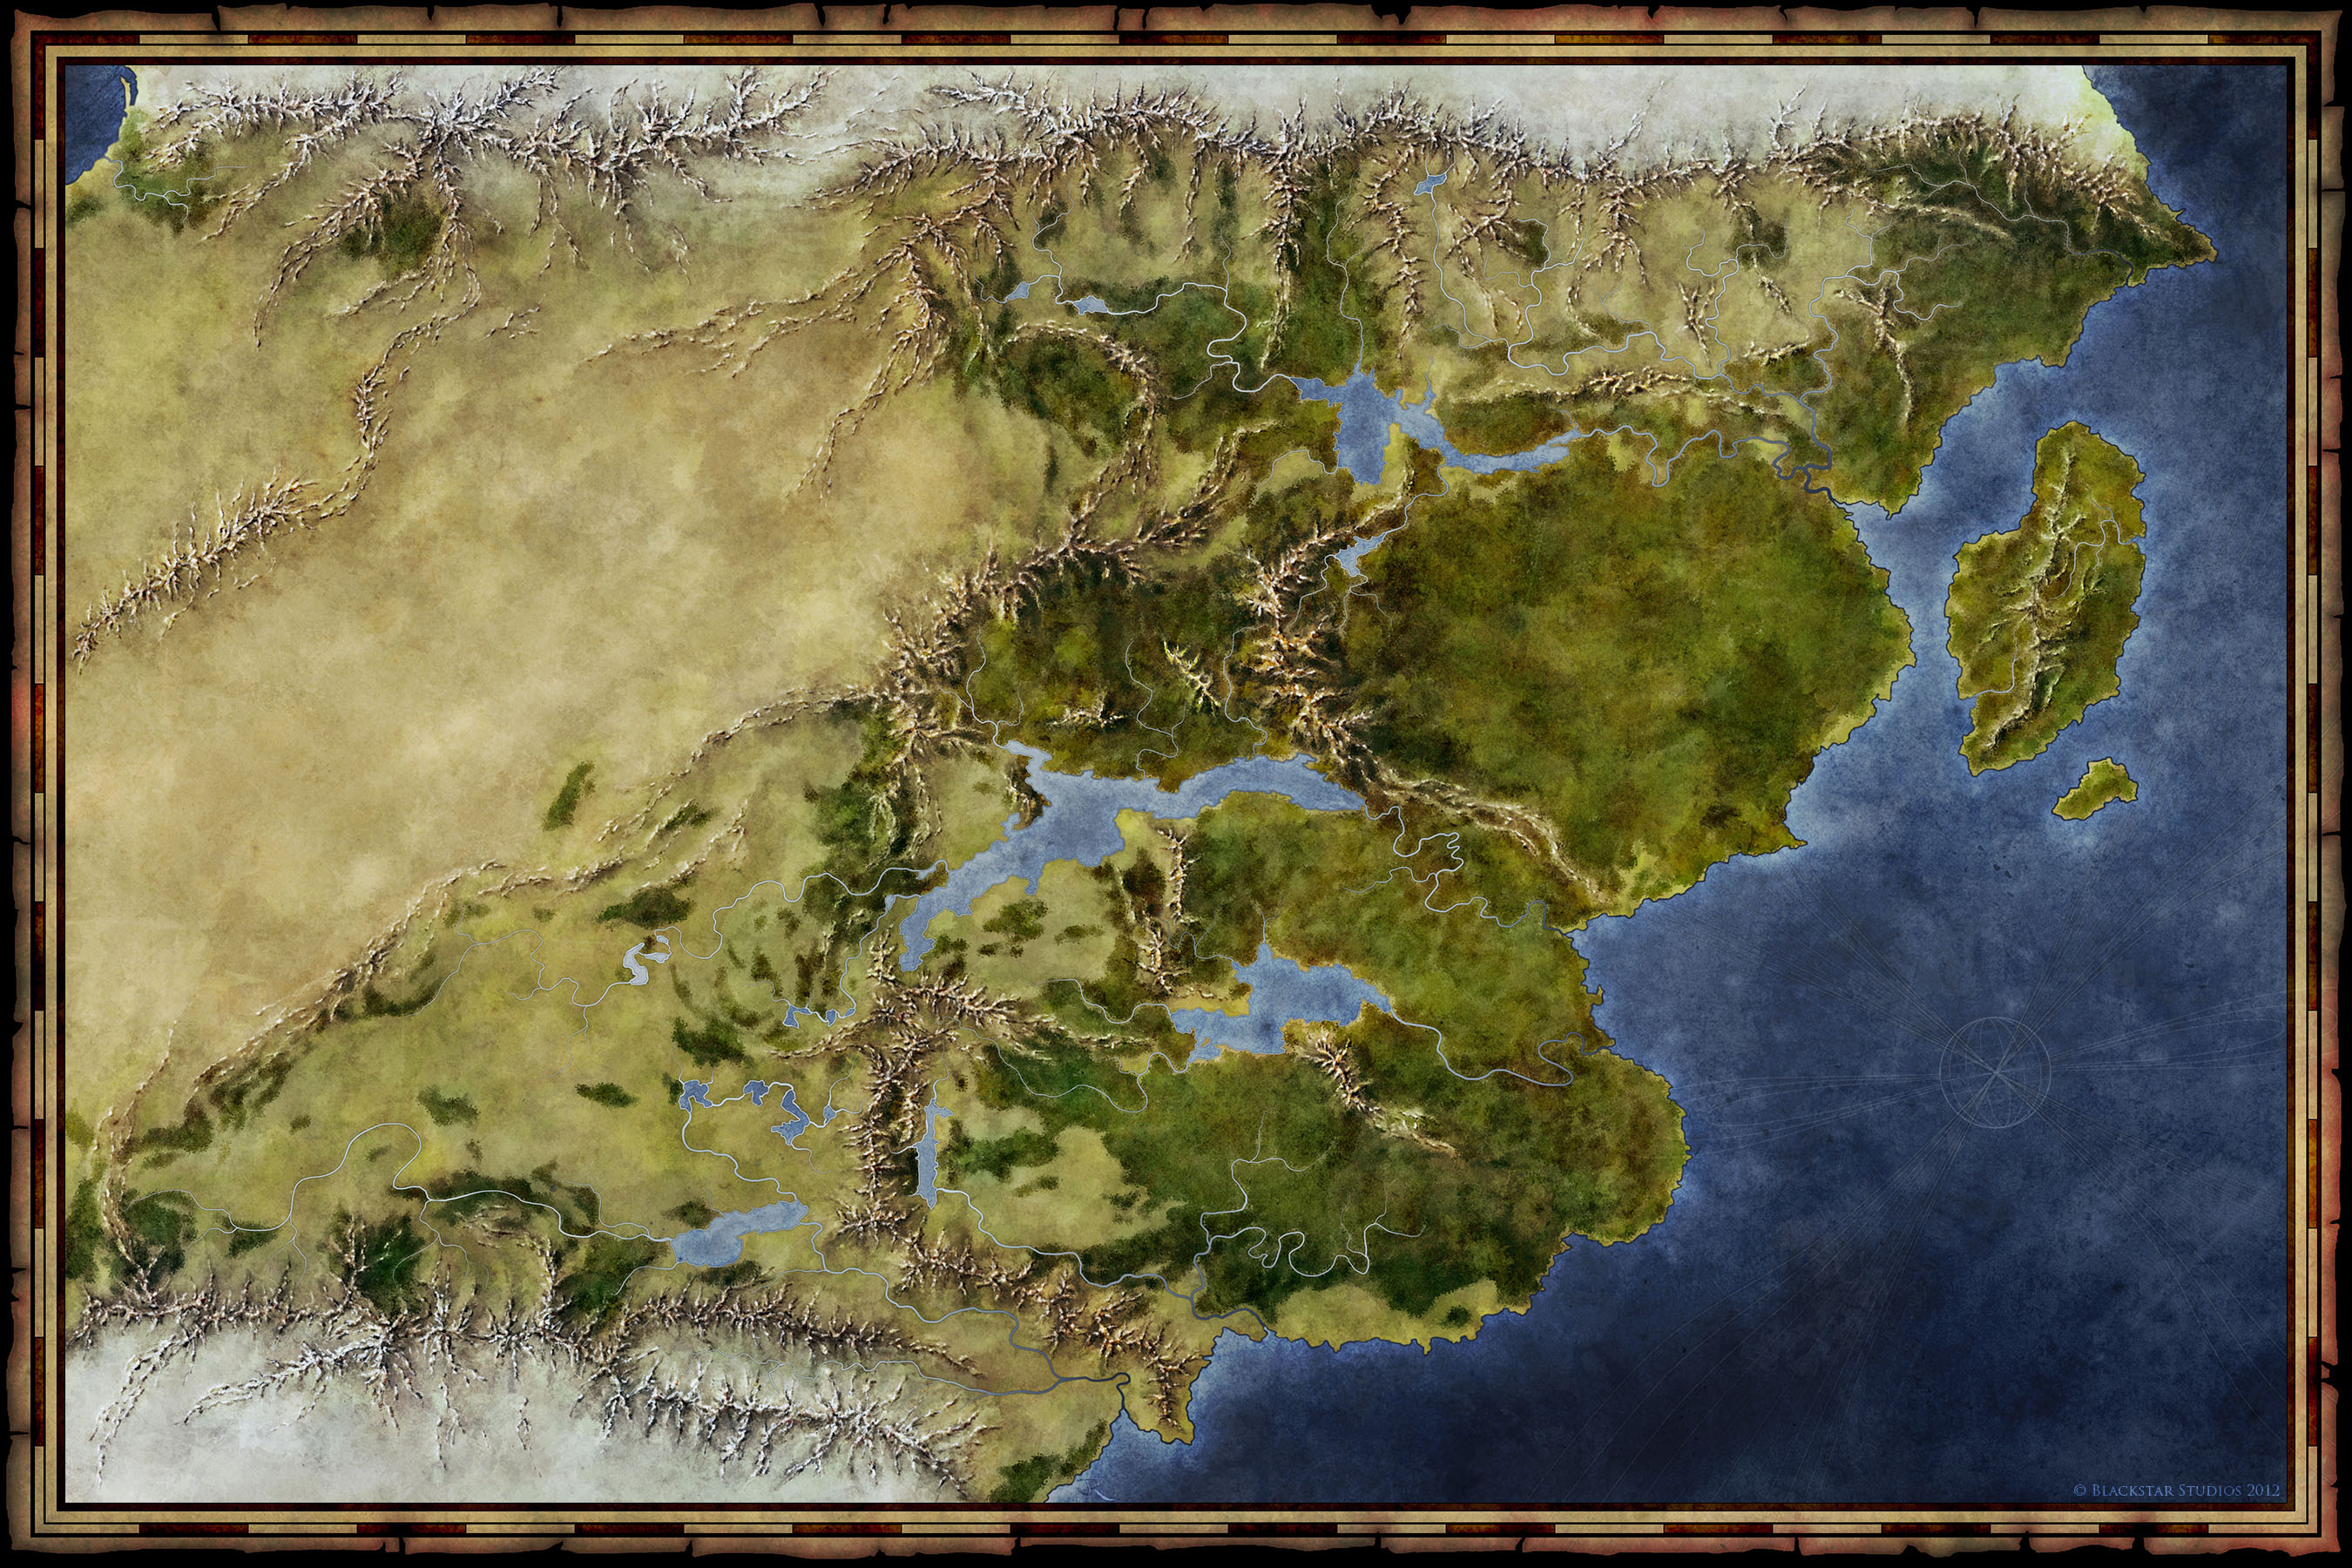 Free Dd World Map Maker.The World Of Saemyyr Unlabelled Fantastic Maps